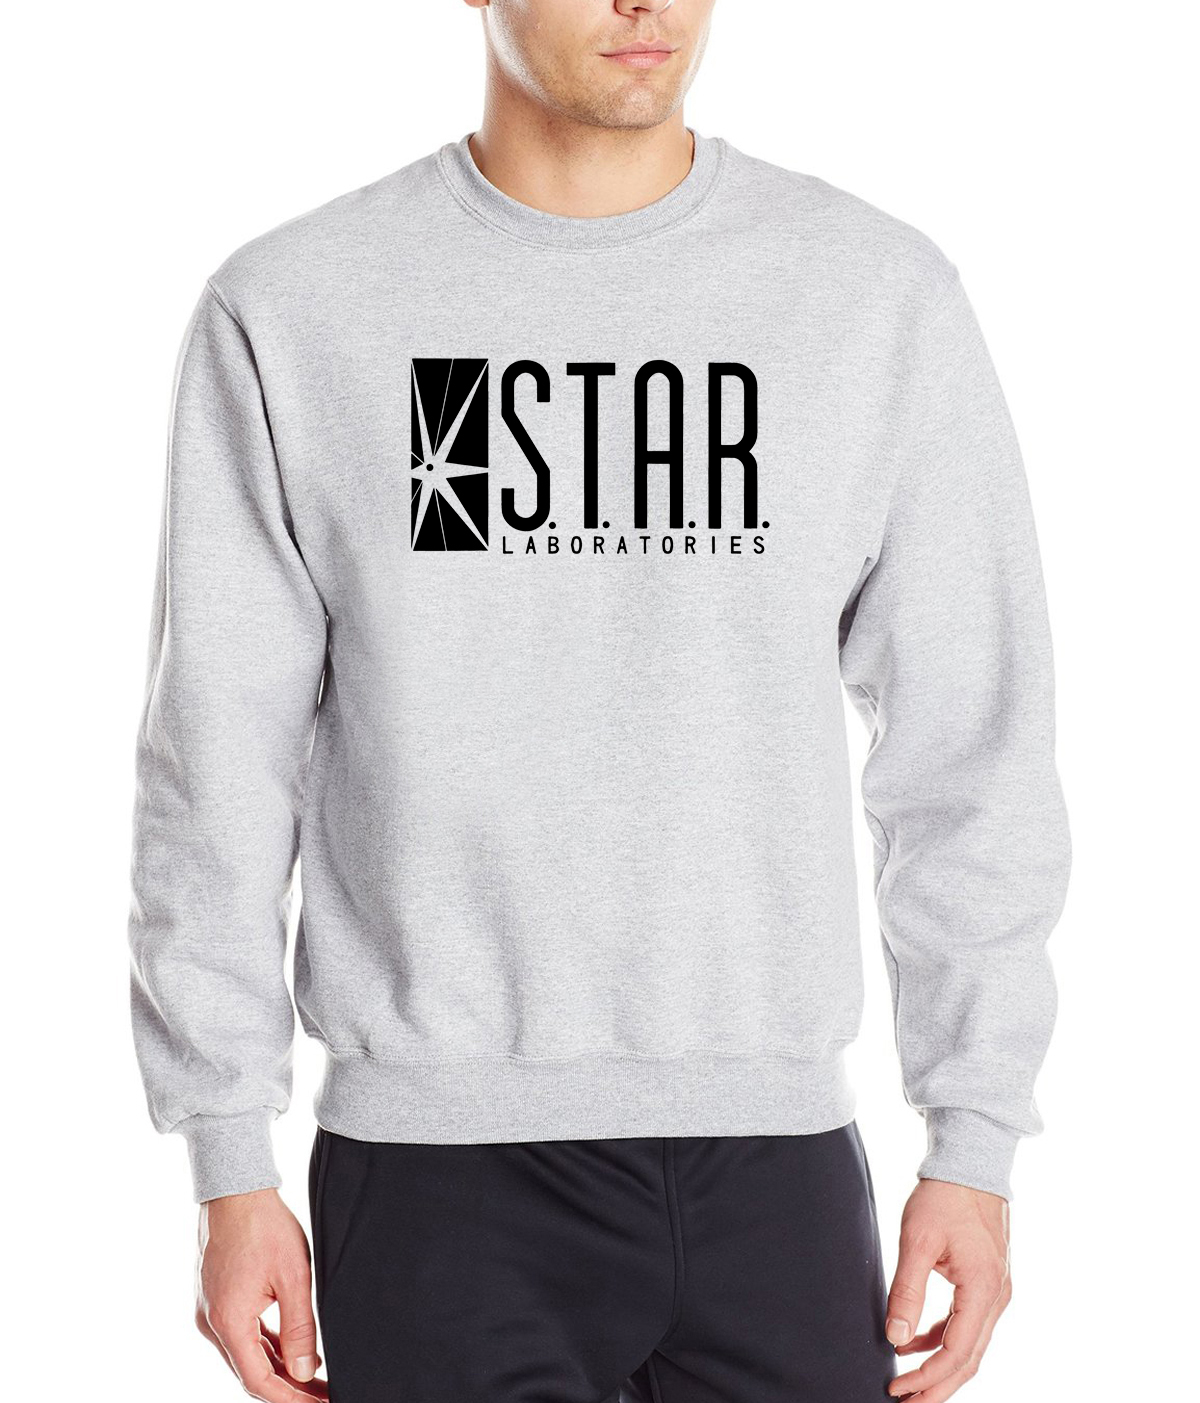 Superman Series STAR 2020 Hot Sale Spring Winter Fashion S.T.A.R.labs Men Hoodies Sweatshirt Harajuku Tracksuit Cool Streetwear